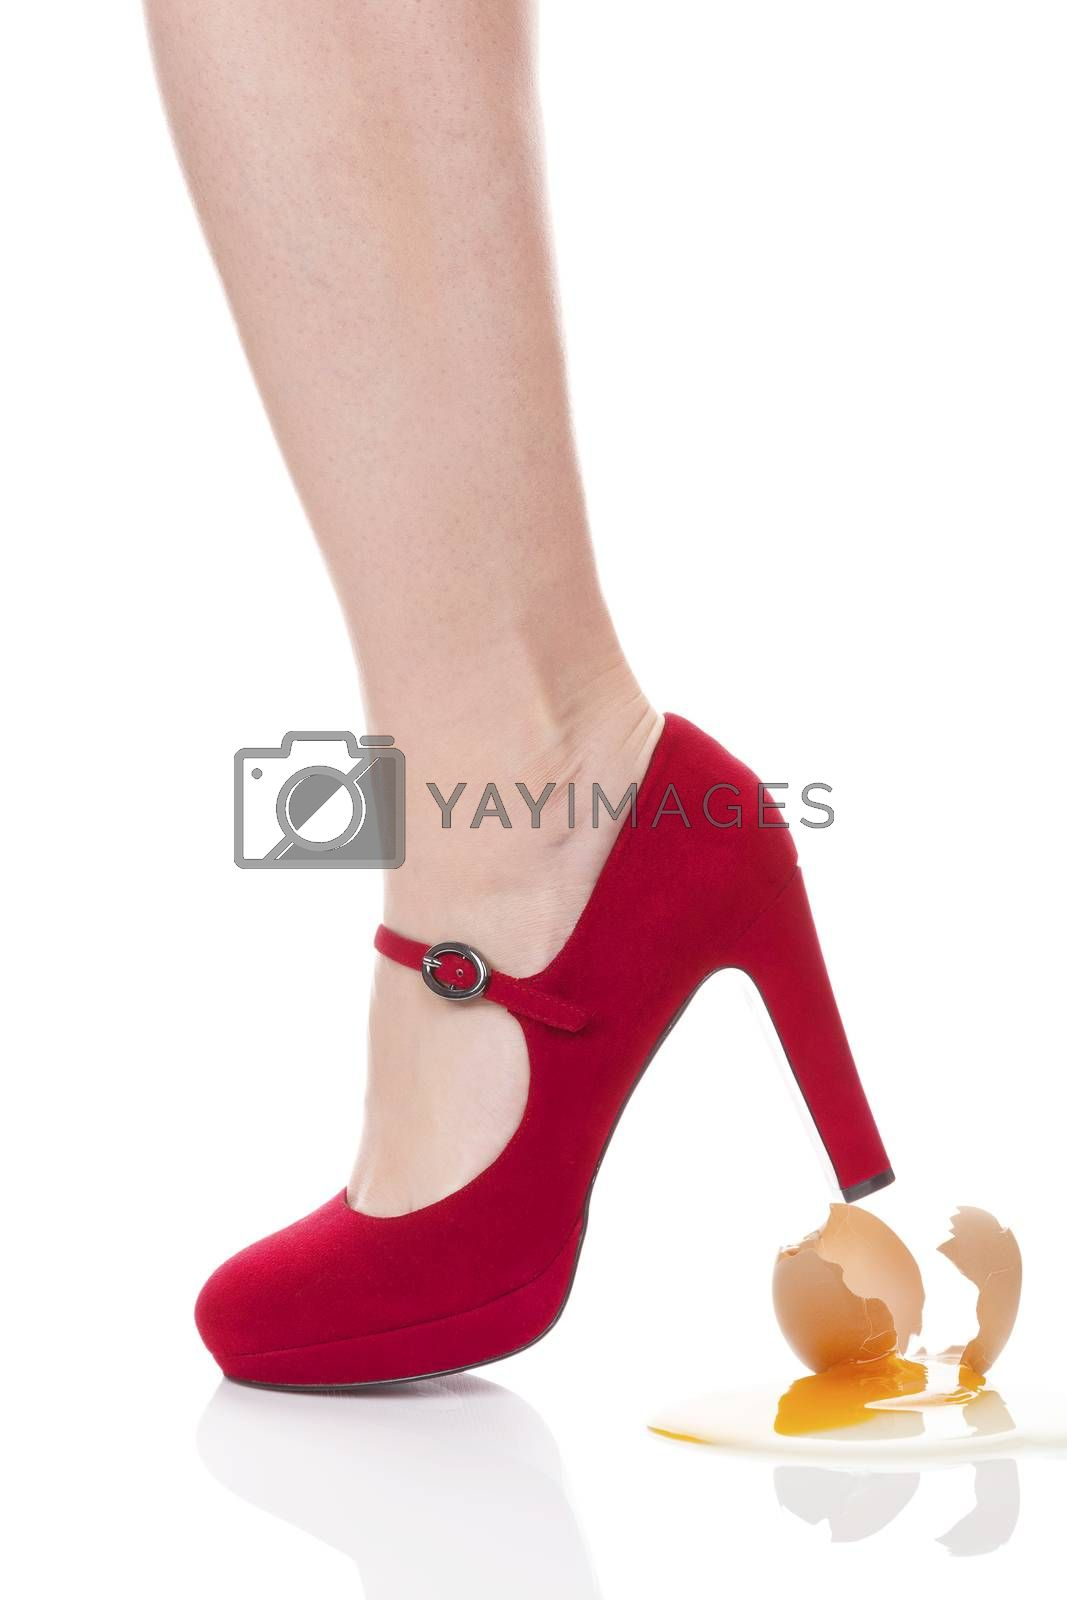 Domestic violence against men. Female leg in high heels breaking a egg isolated on white background.